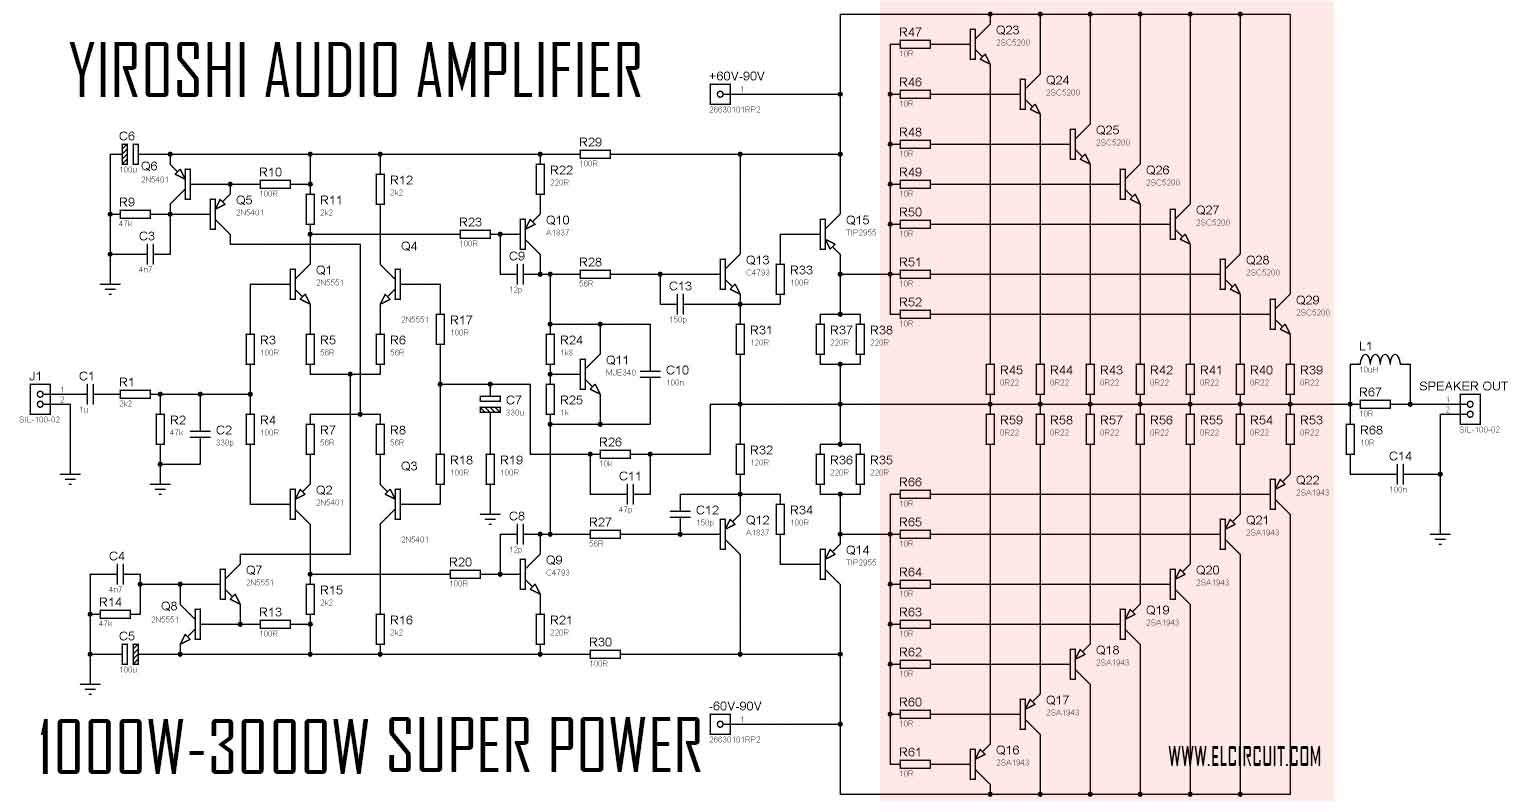 yiroshi audio power amplifier circuit diagram [ 1520 x 812 Pixel ]